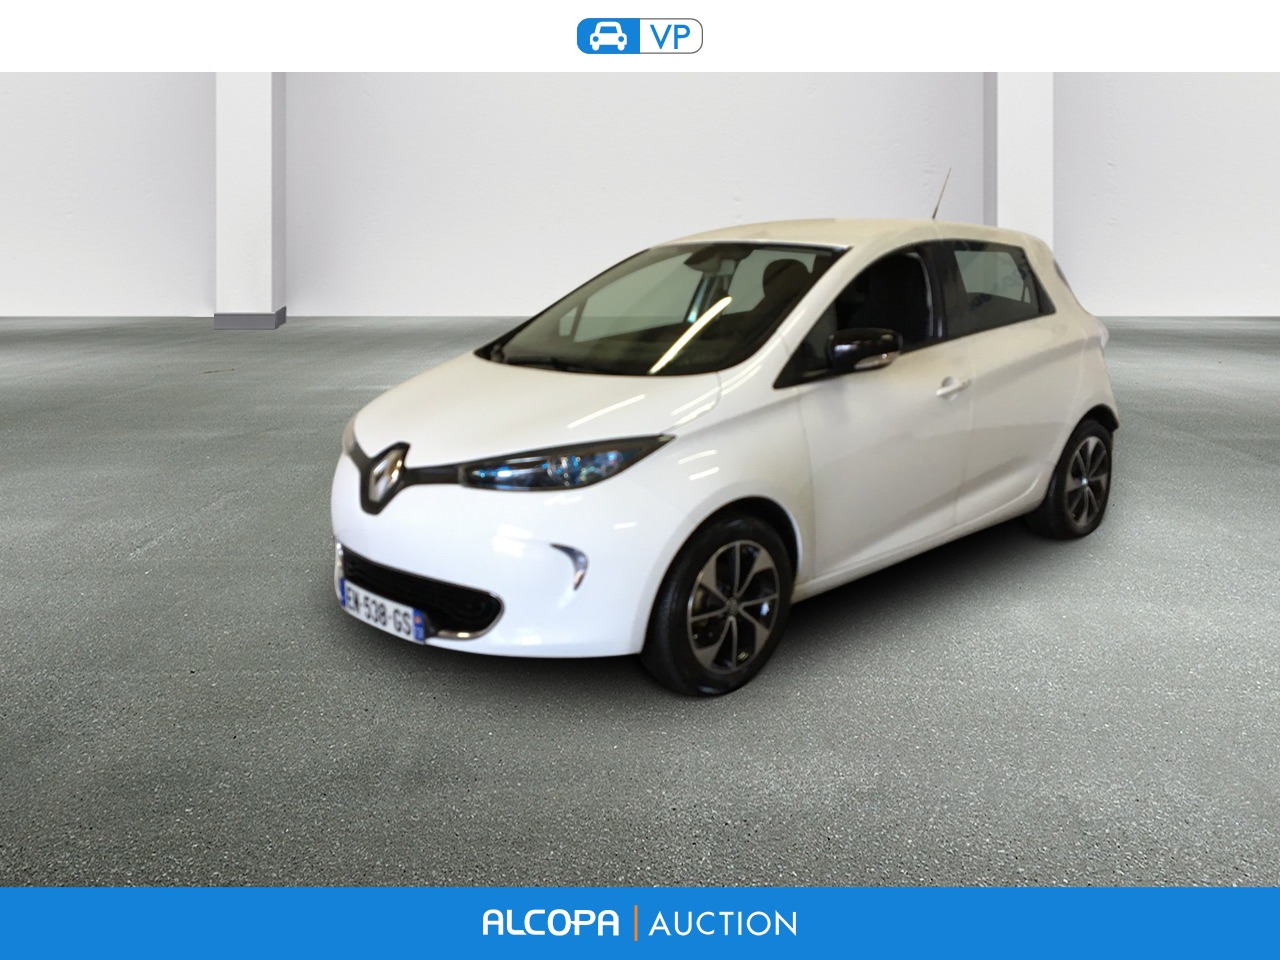 renault zoe 10 2012 zoe intens gamme 2017 alcopa auction. Black Bedroom Furniture Sets. Home Design Ideas